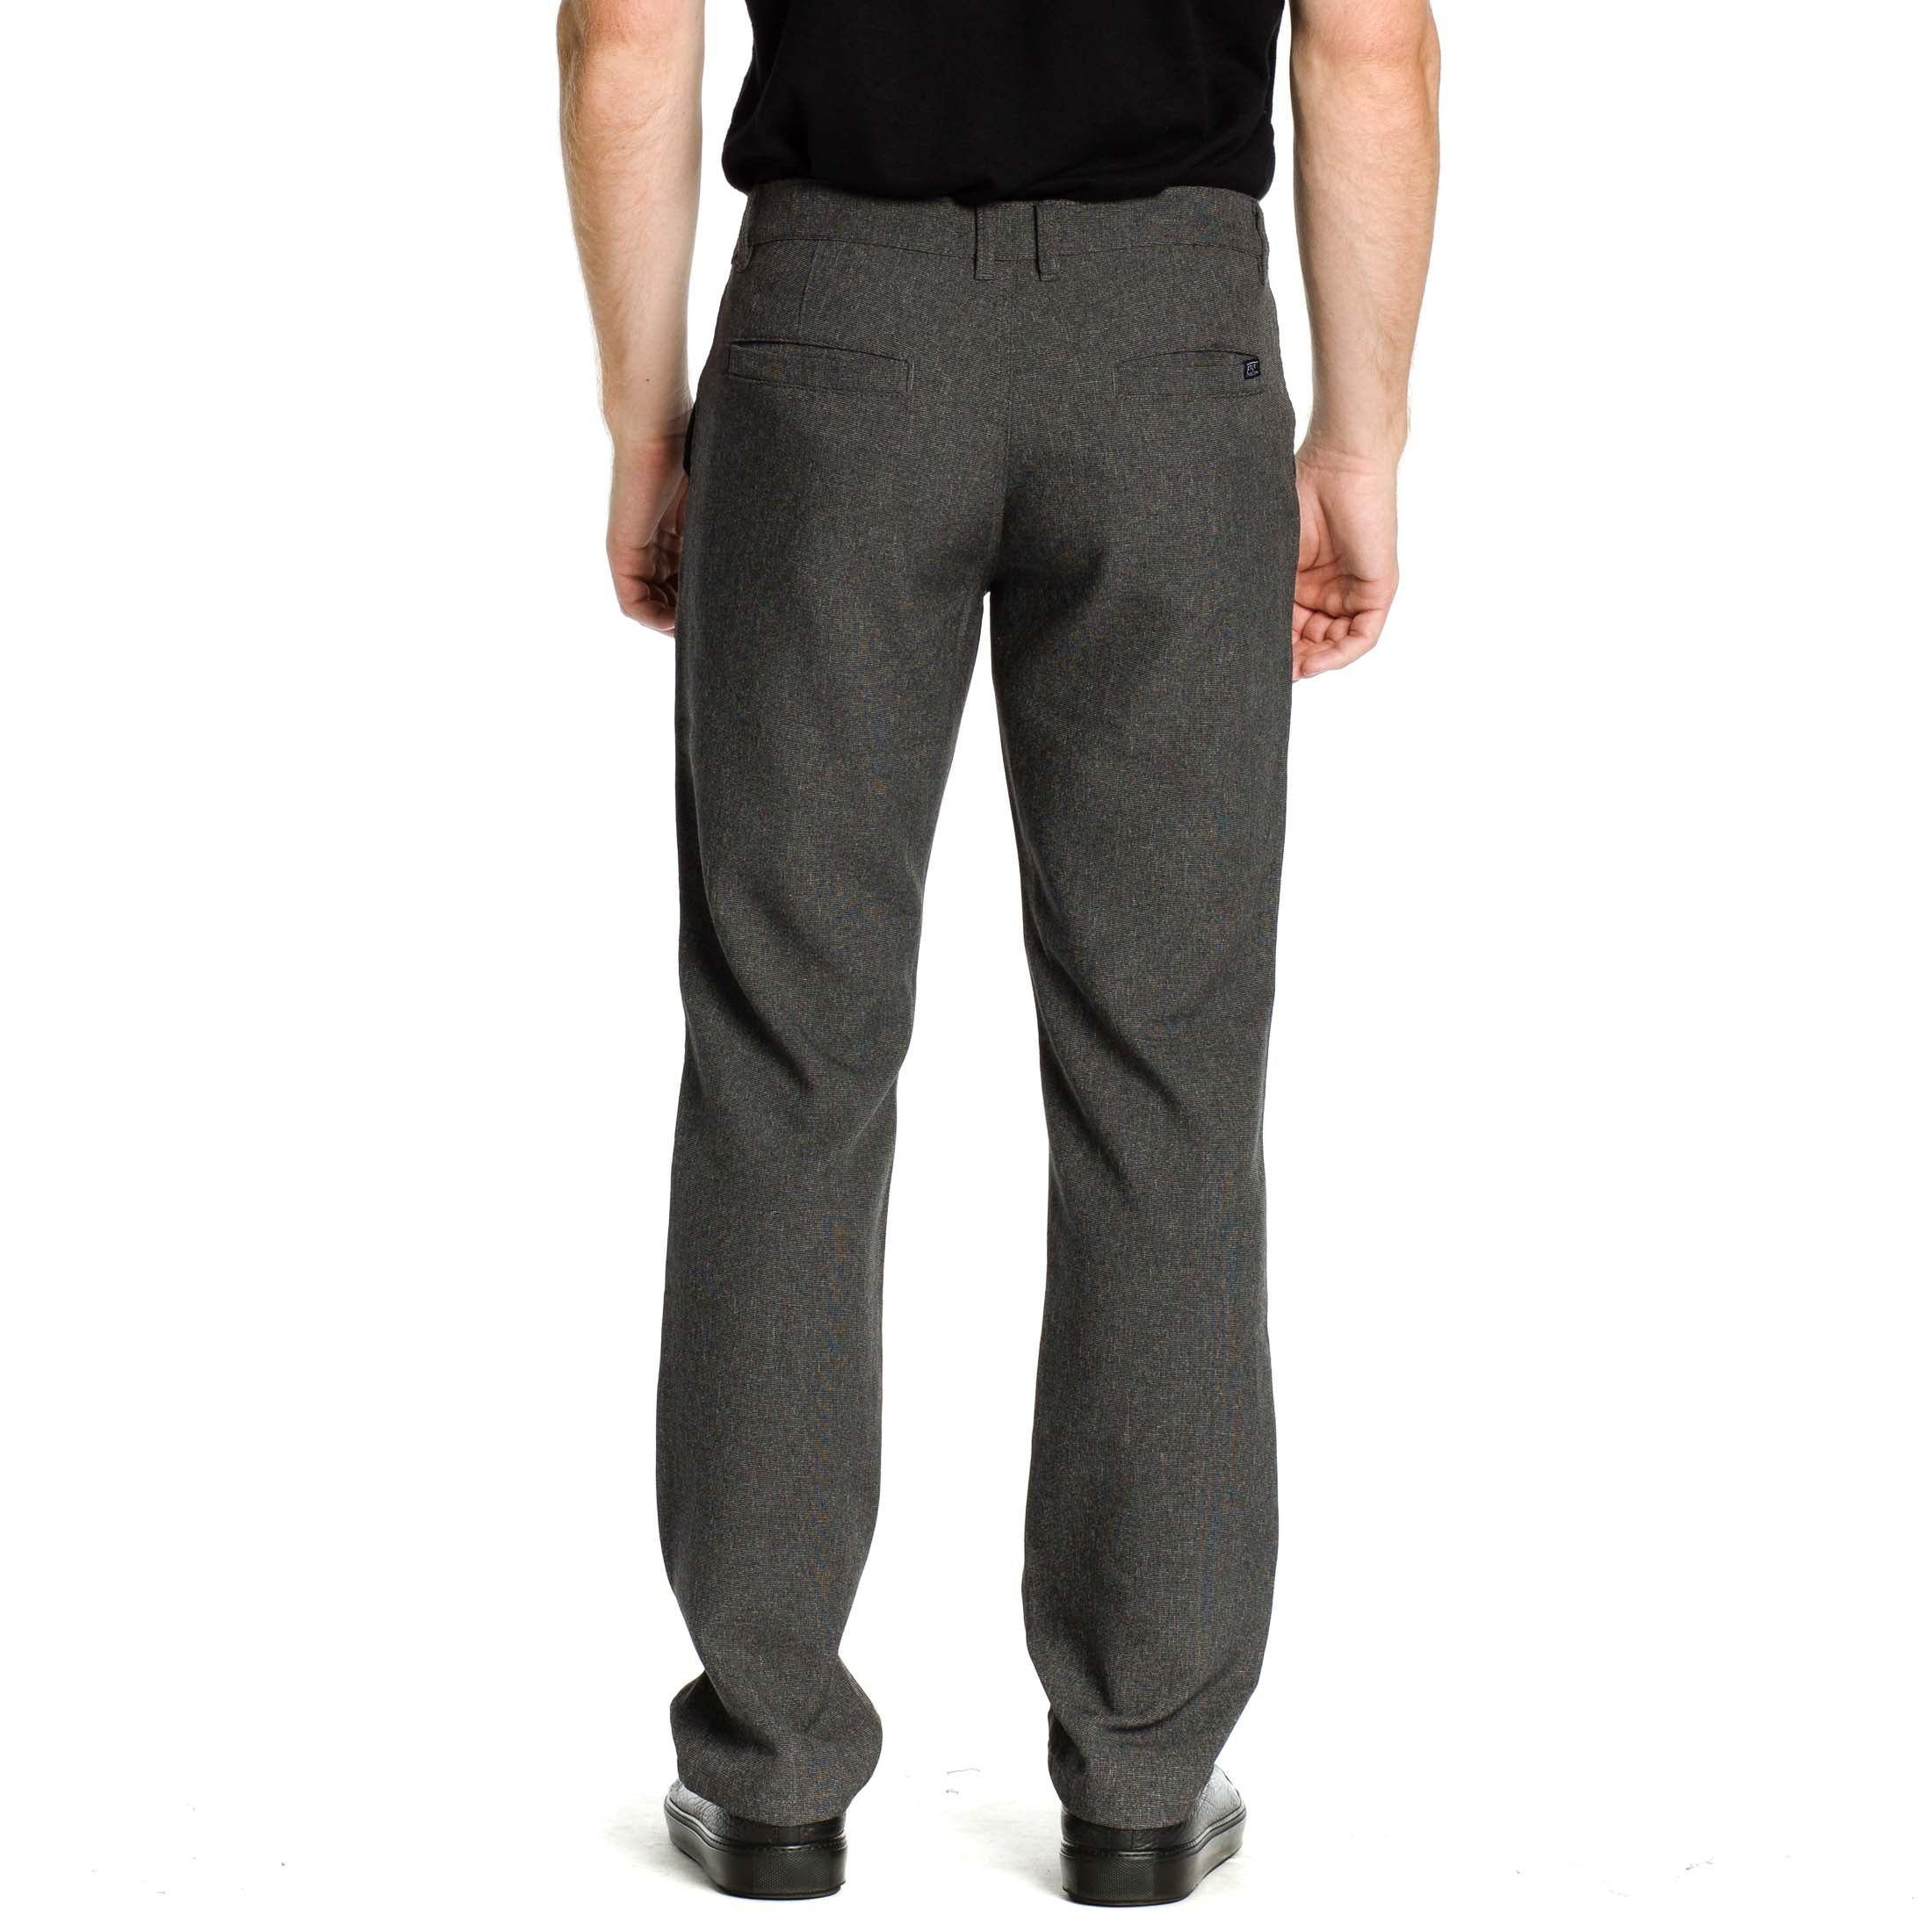 Hamburg Pant - Black - Ezekiel Clothing